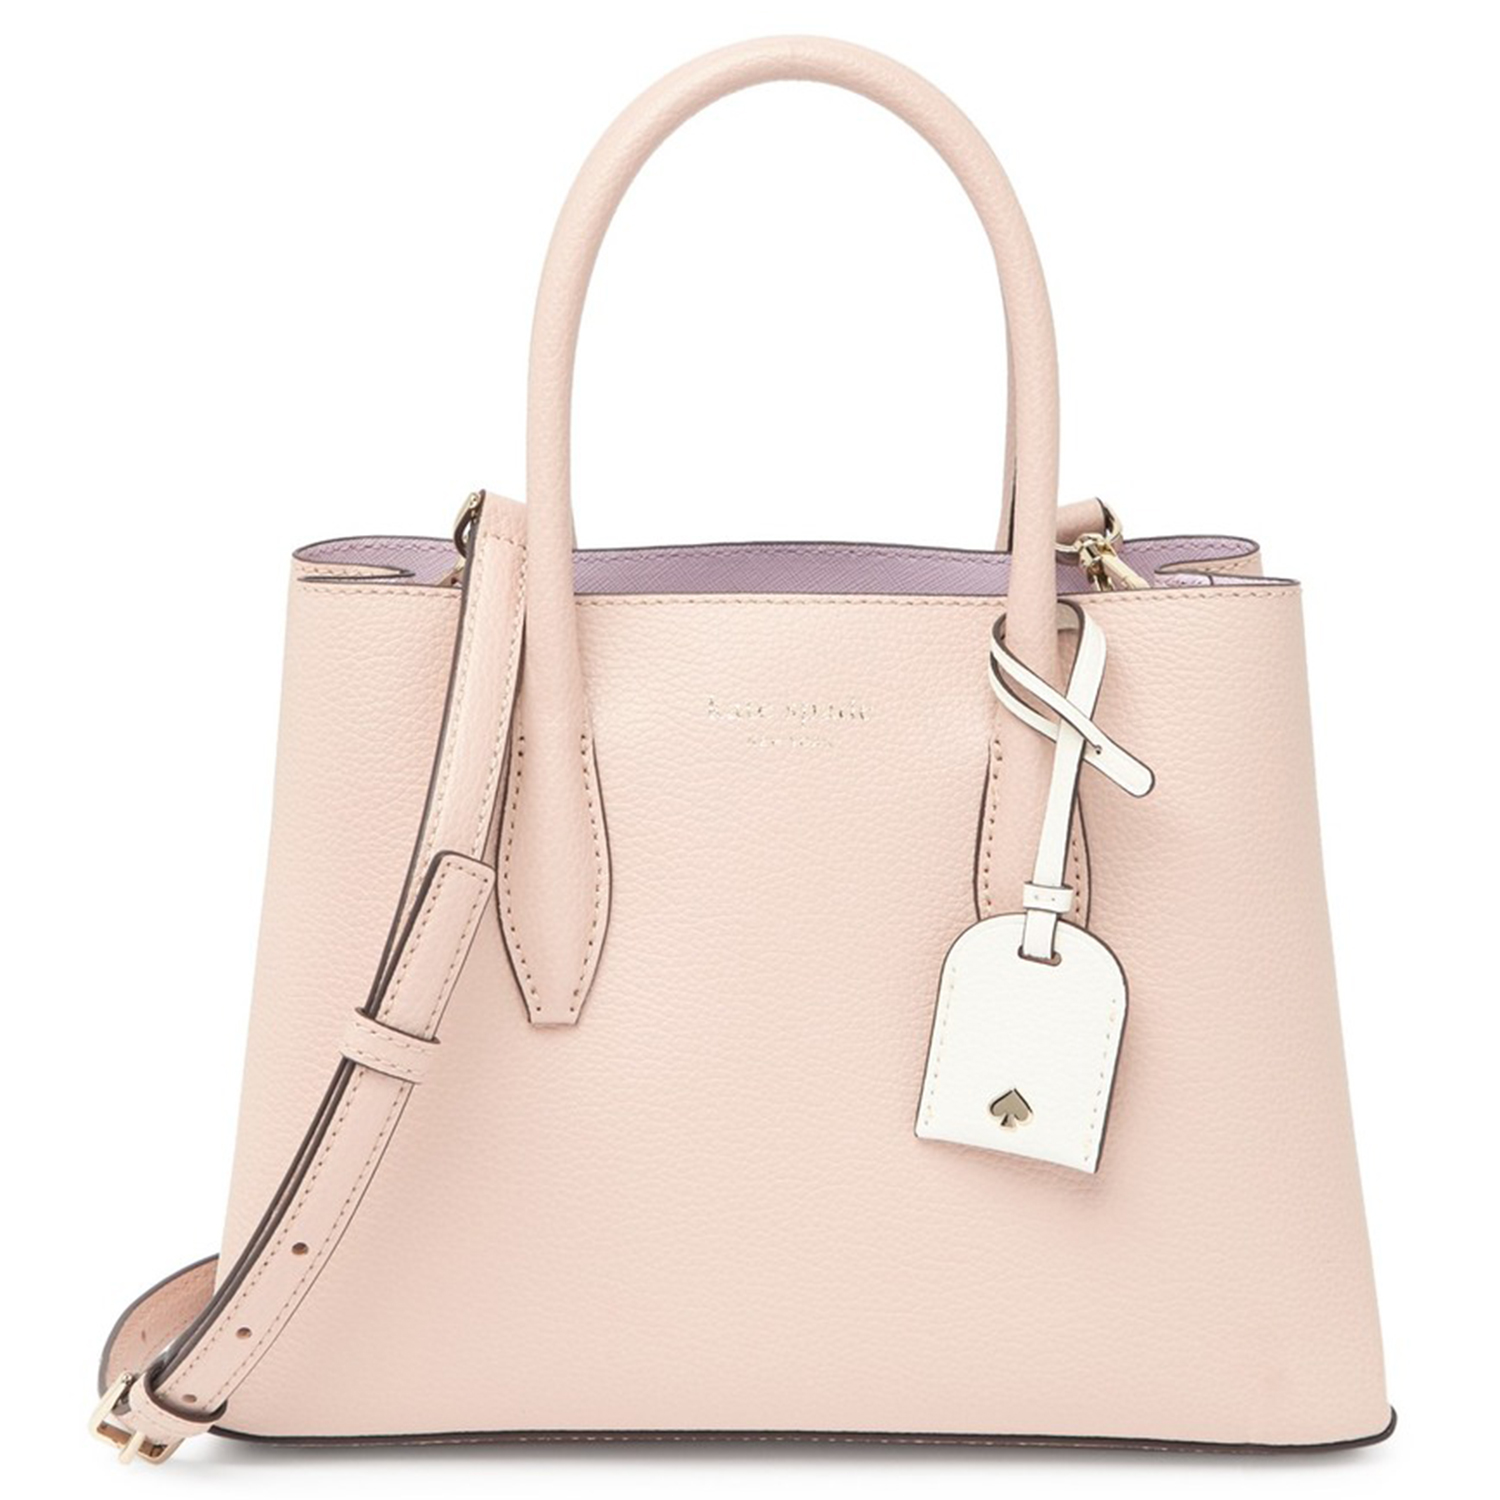 Kate Spade Small Leather Satchel